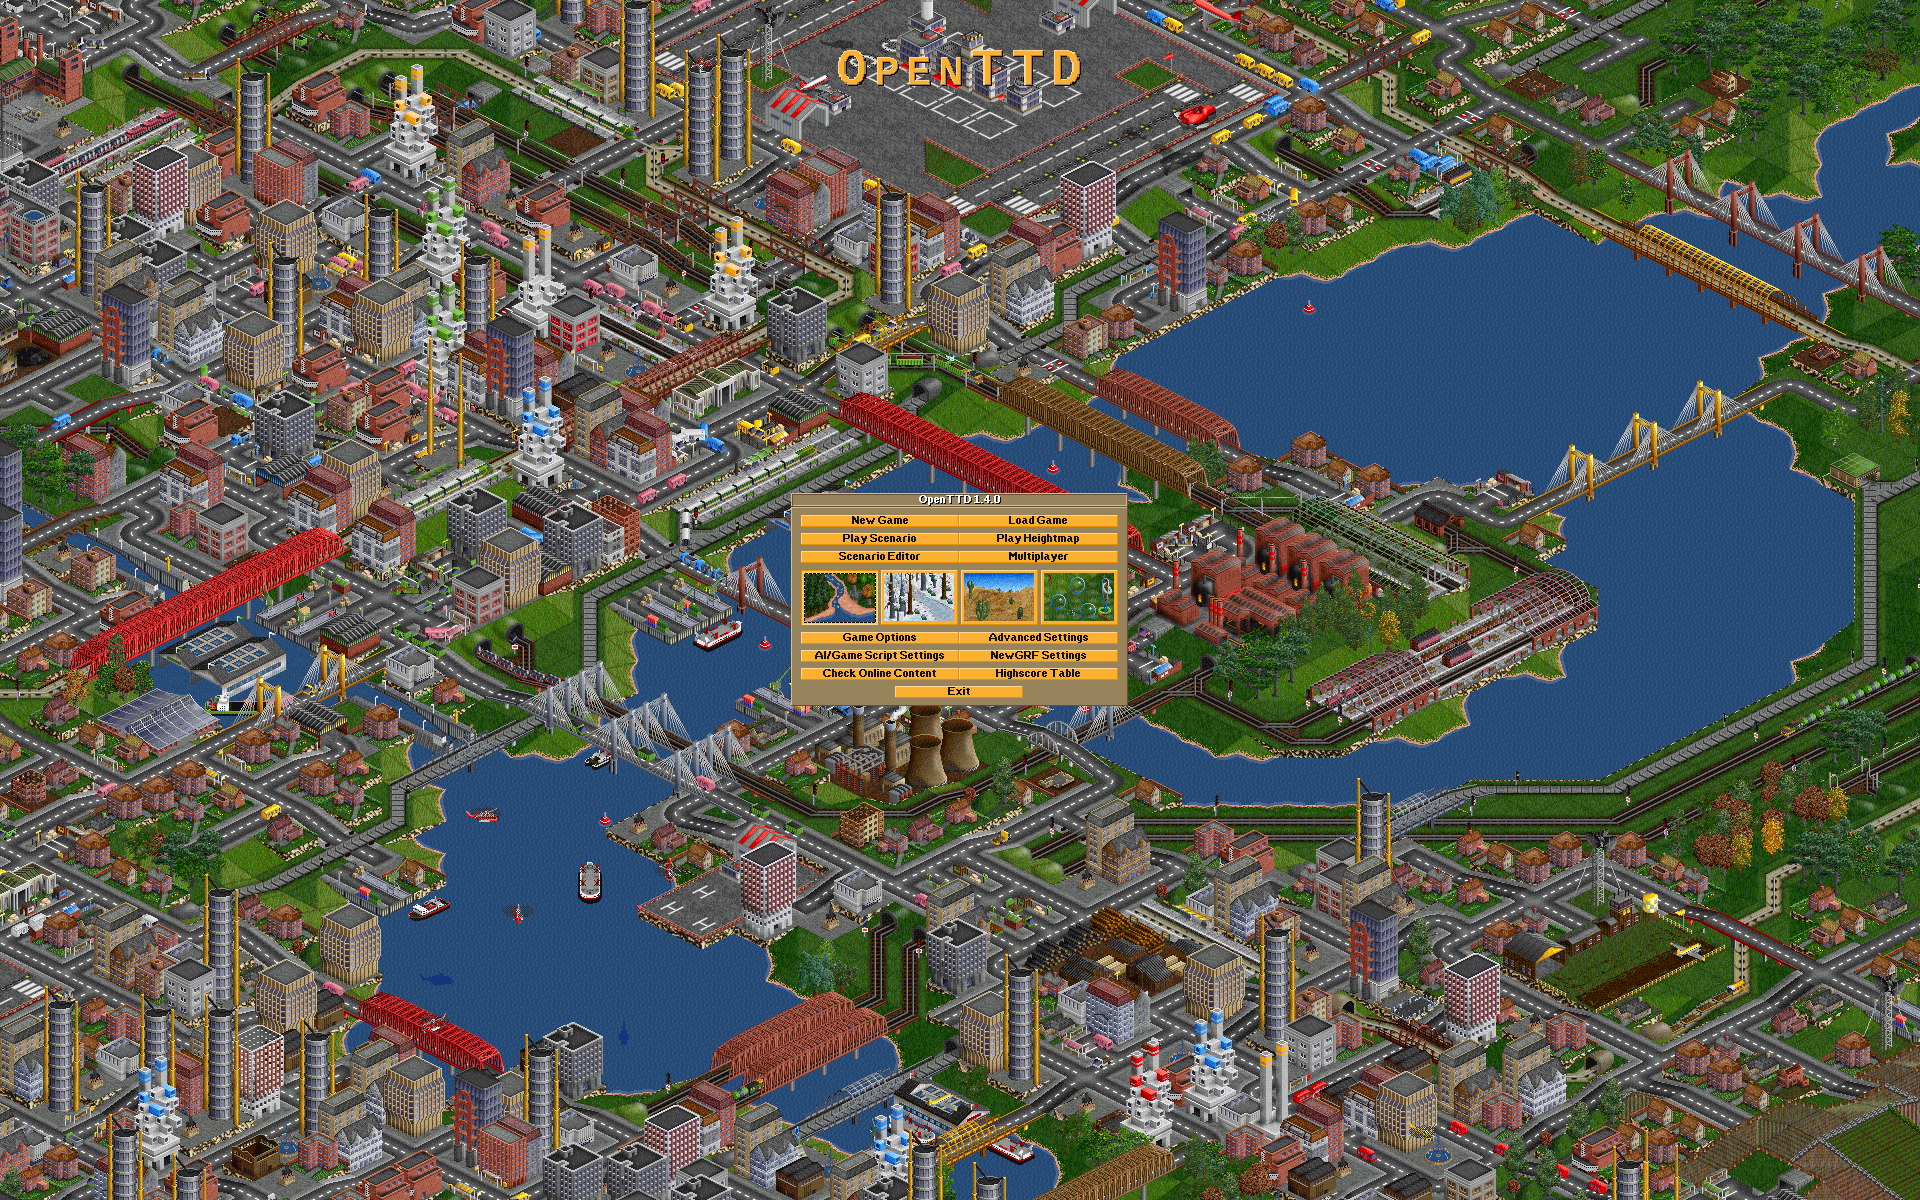 The title screen from OpenTTD 1.4.